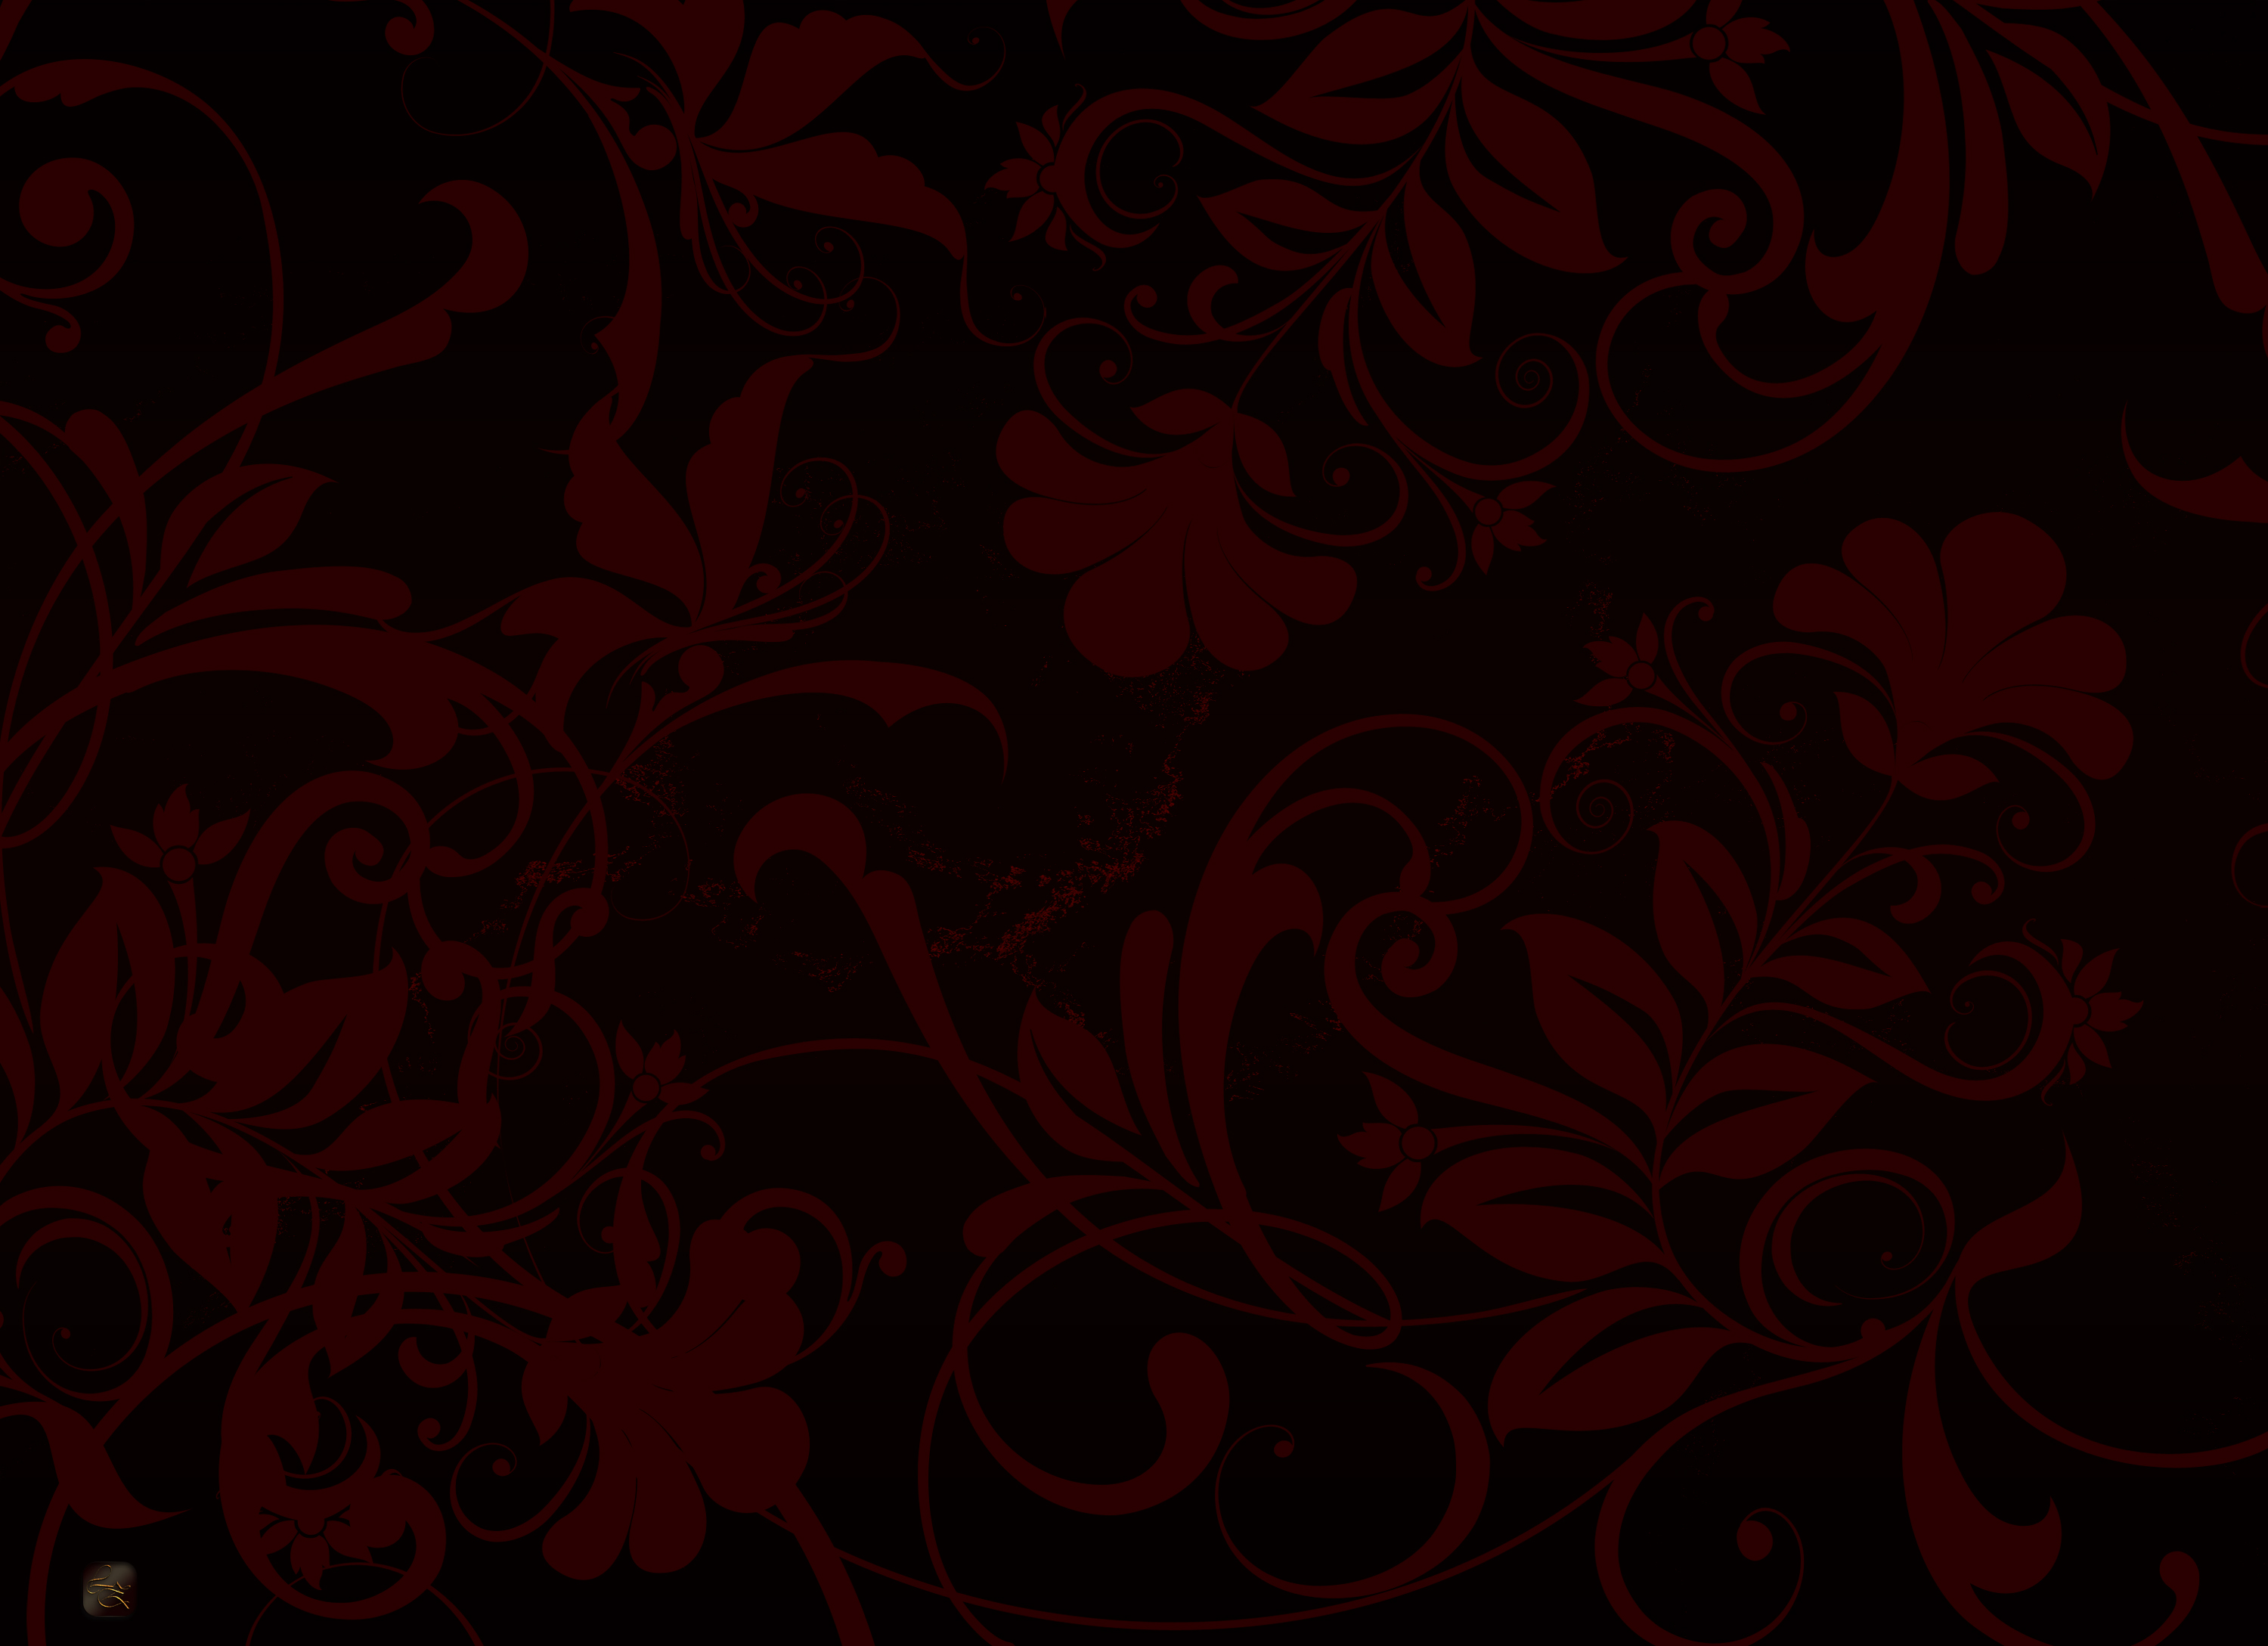 Seamless Free Floral Textures (23)